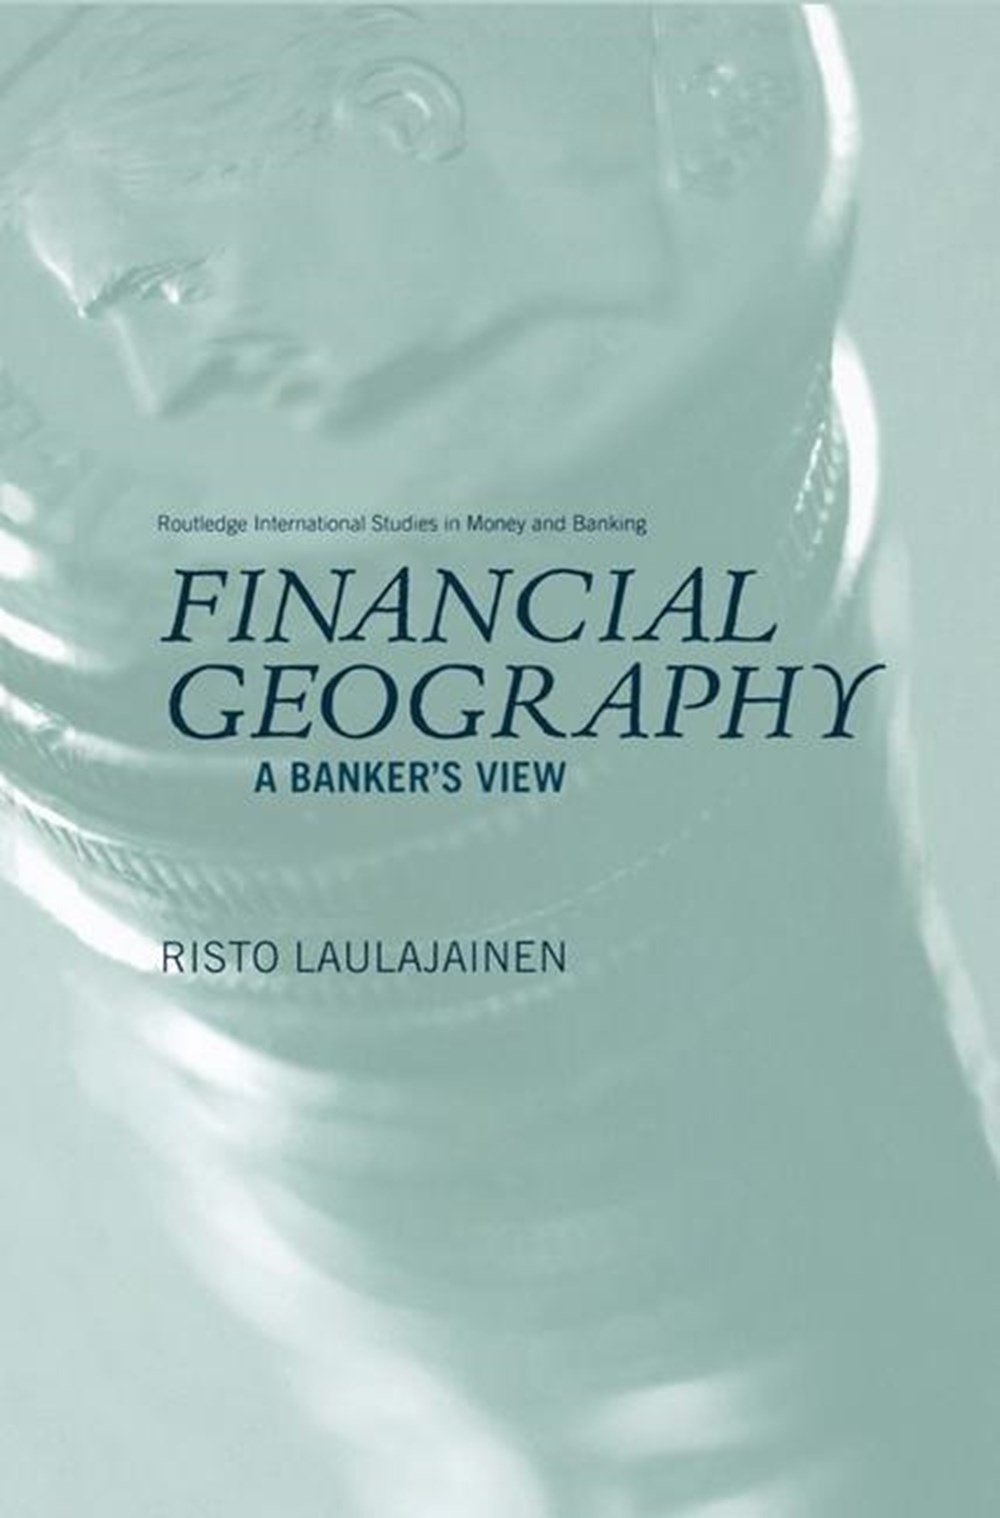 Financial Geography A Banker's View